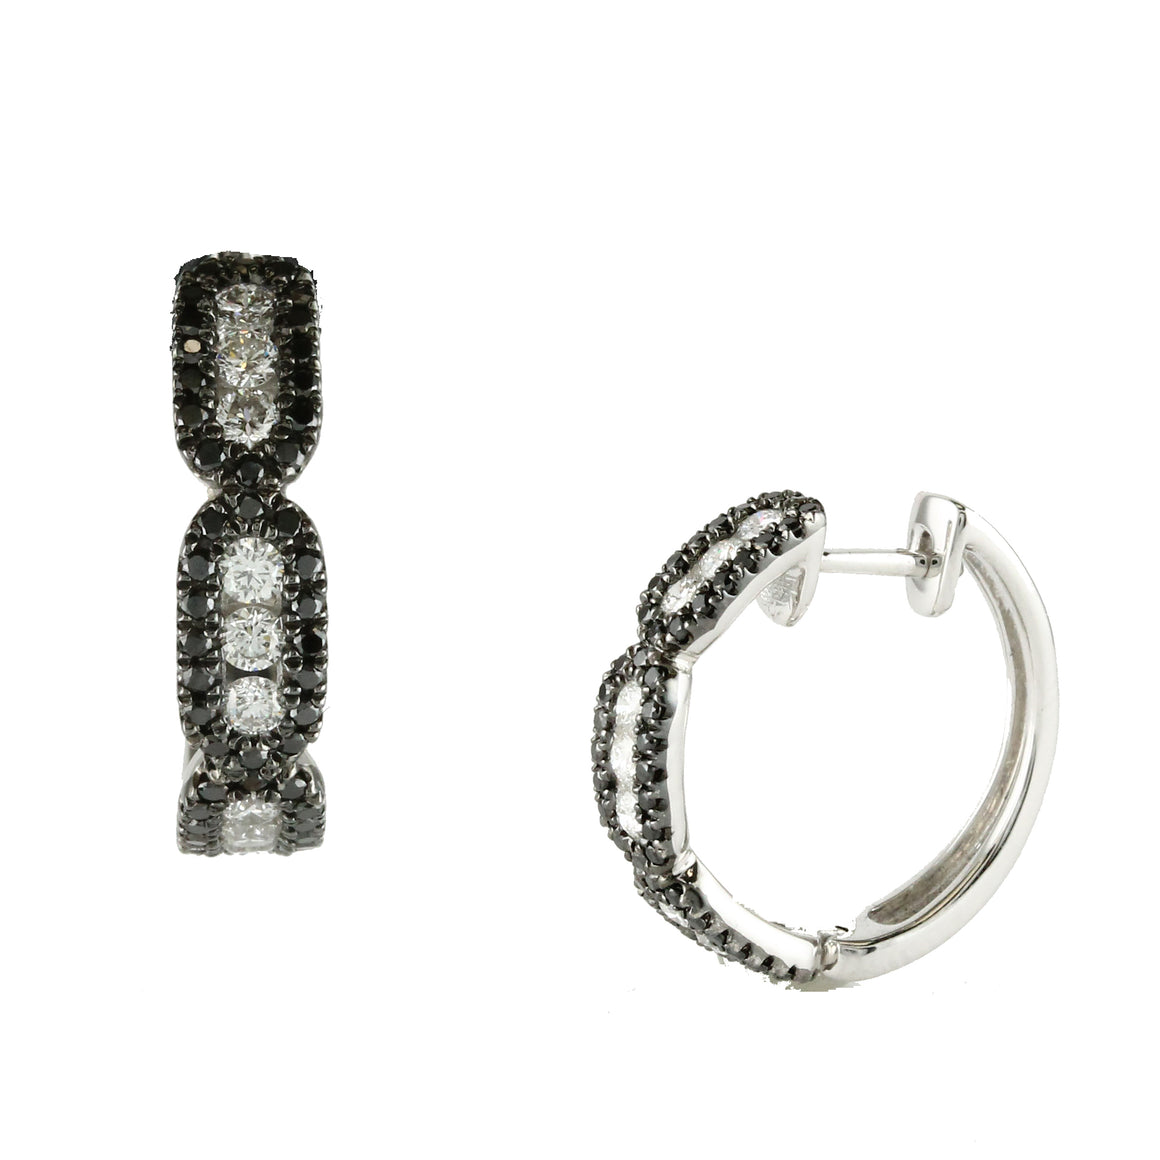 Black and White Diamond Hoop Earrings by Doves - Talisman Collection Fine Jewelers